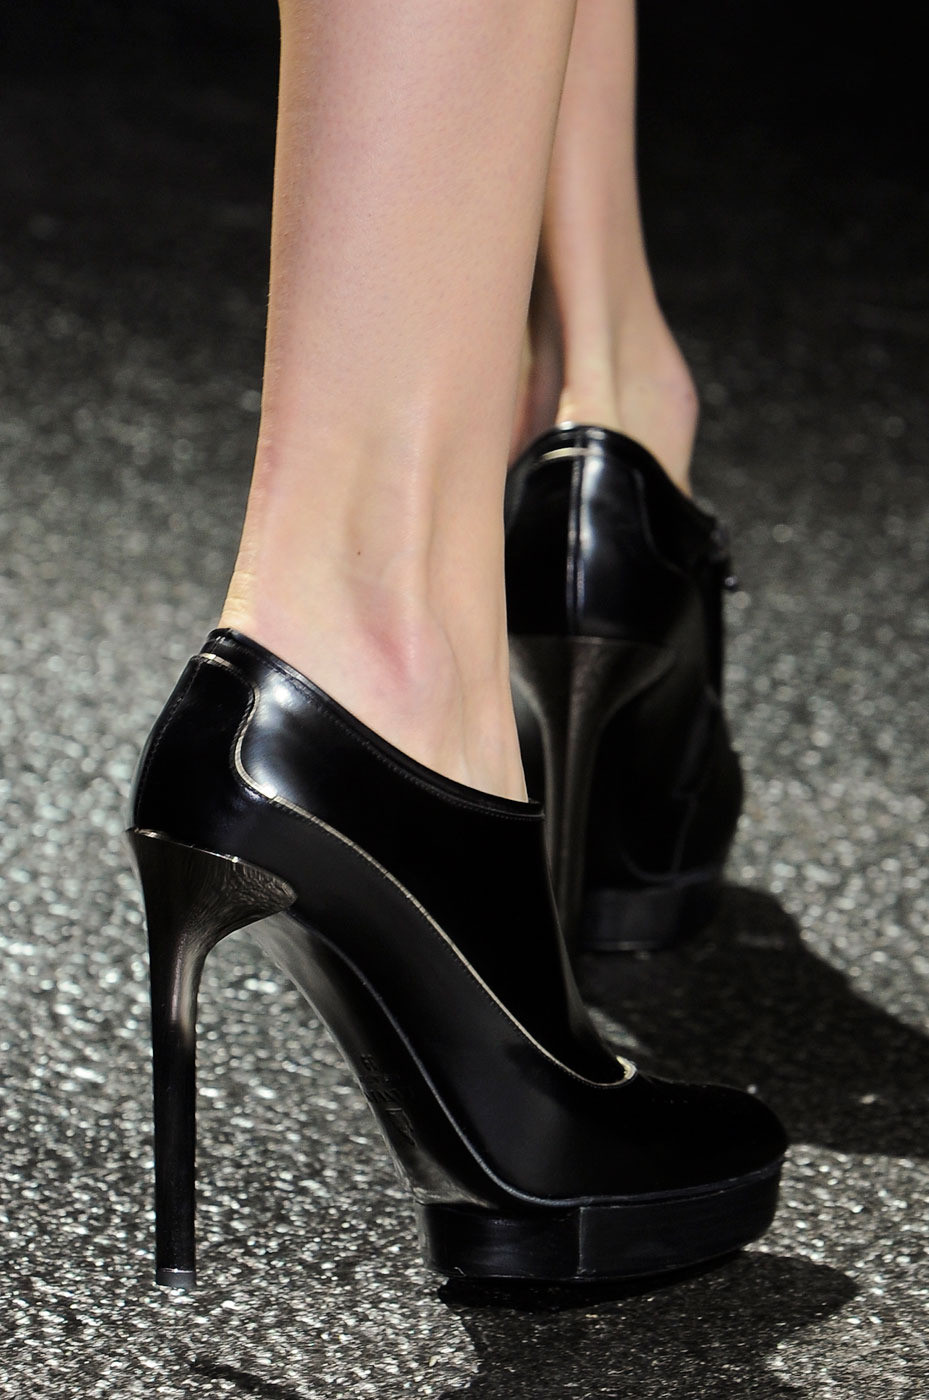 Lanvin Fall/Winter 2012